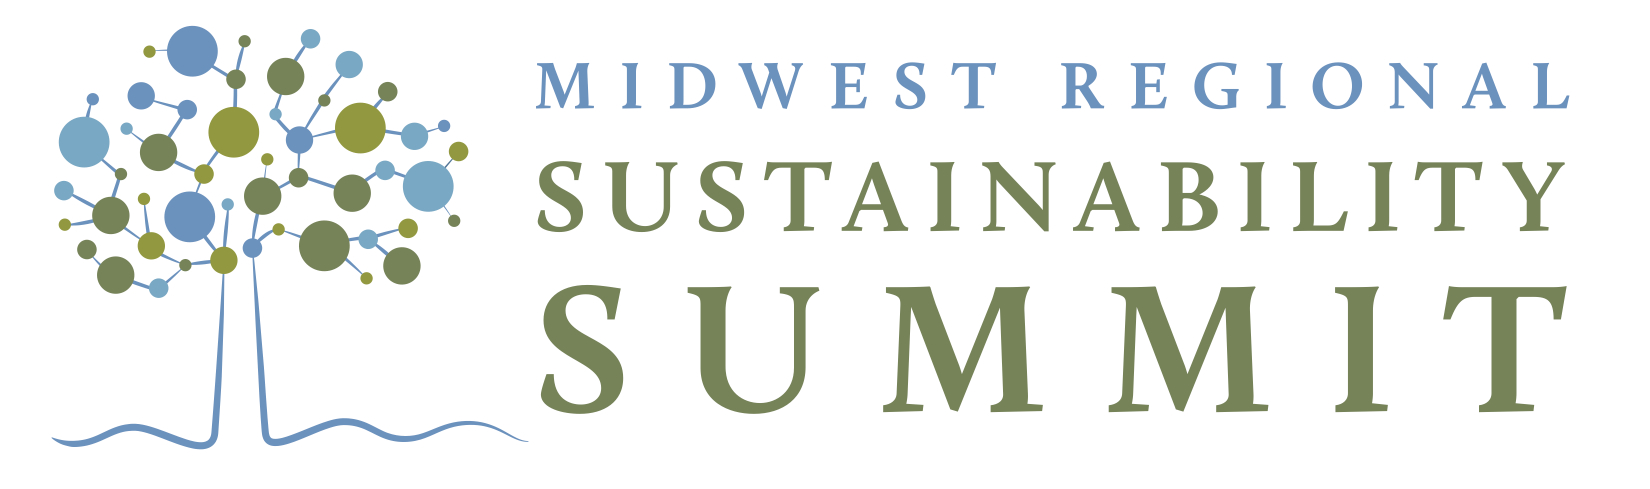 Midwest Regional Sustainability Summit 4-color logotype.